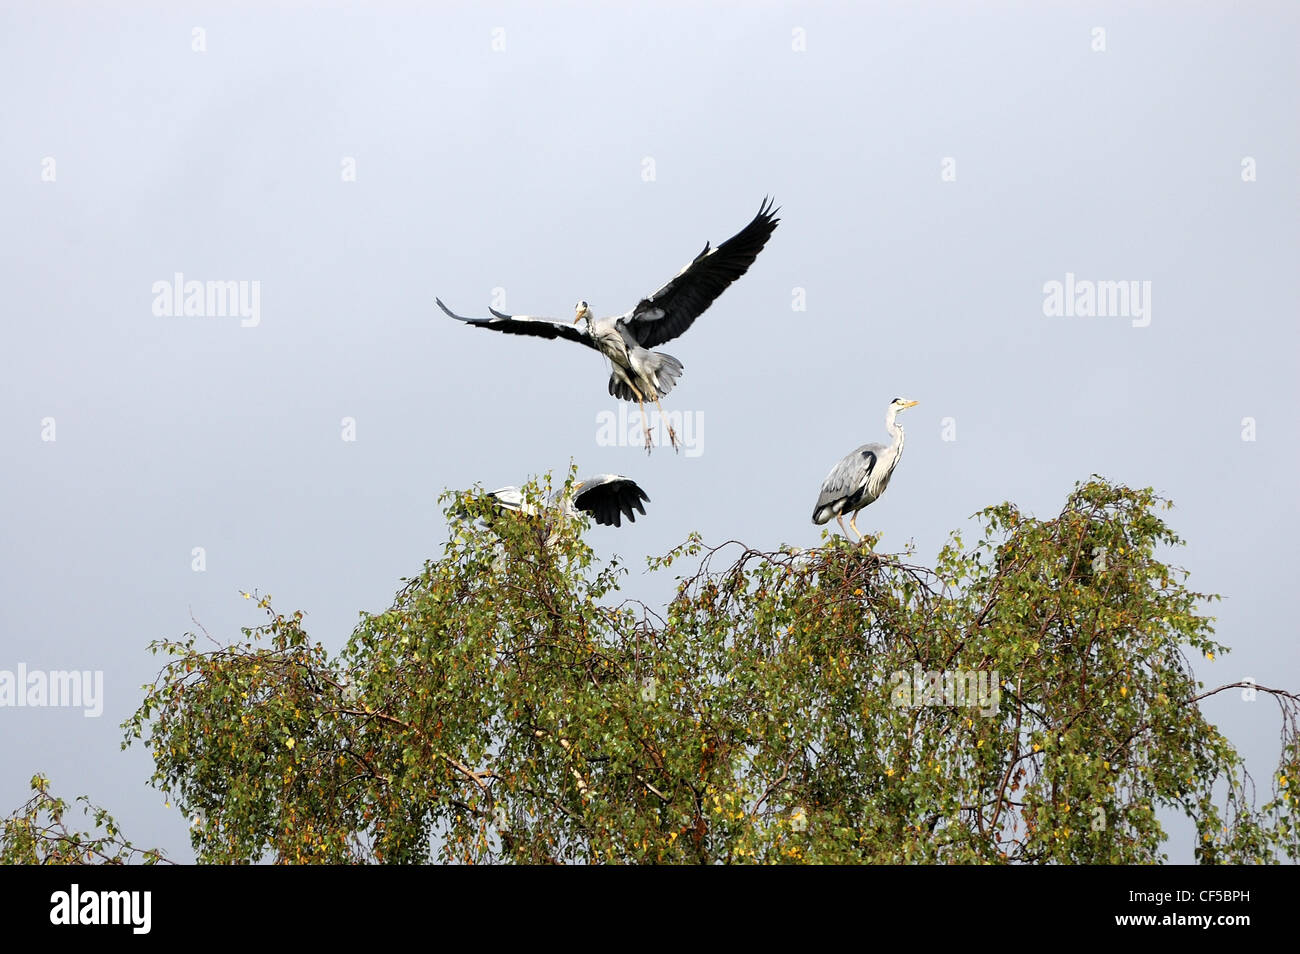 Heron at Muncaster about to land in treetop - Stock Image